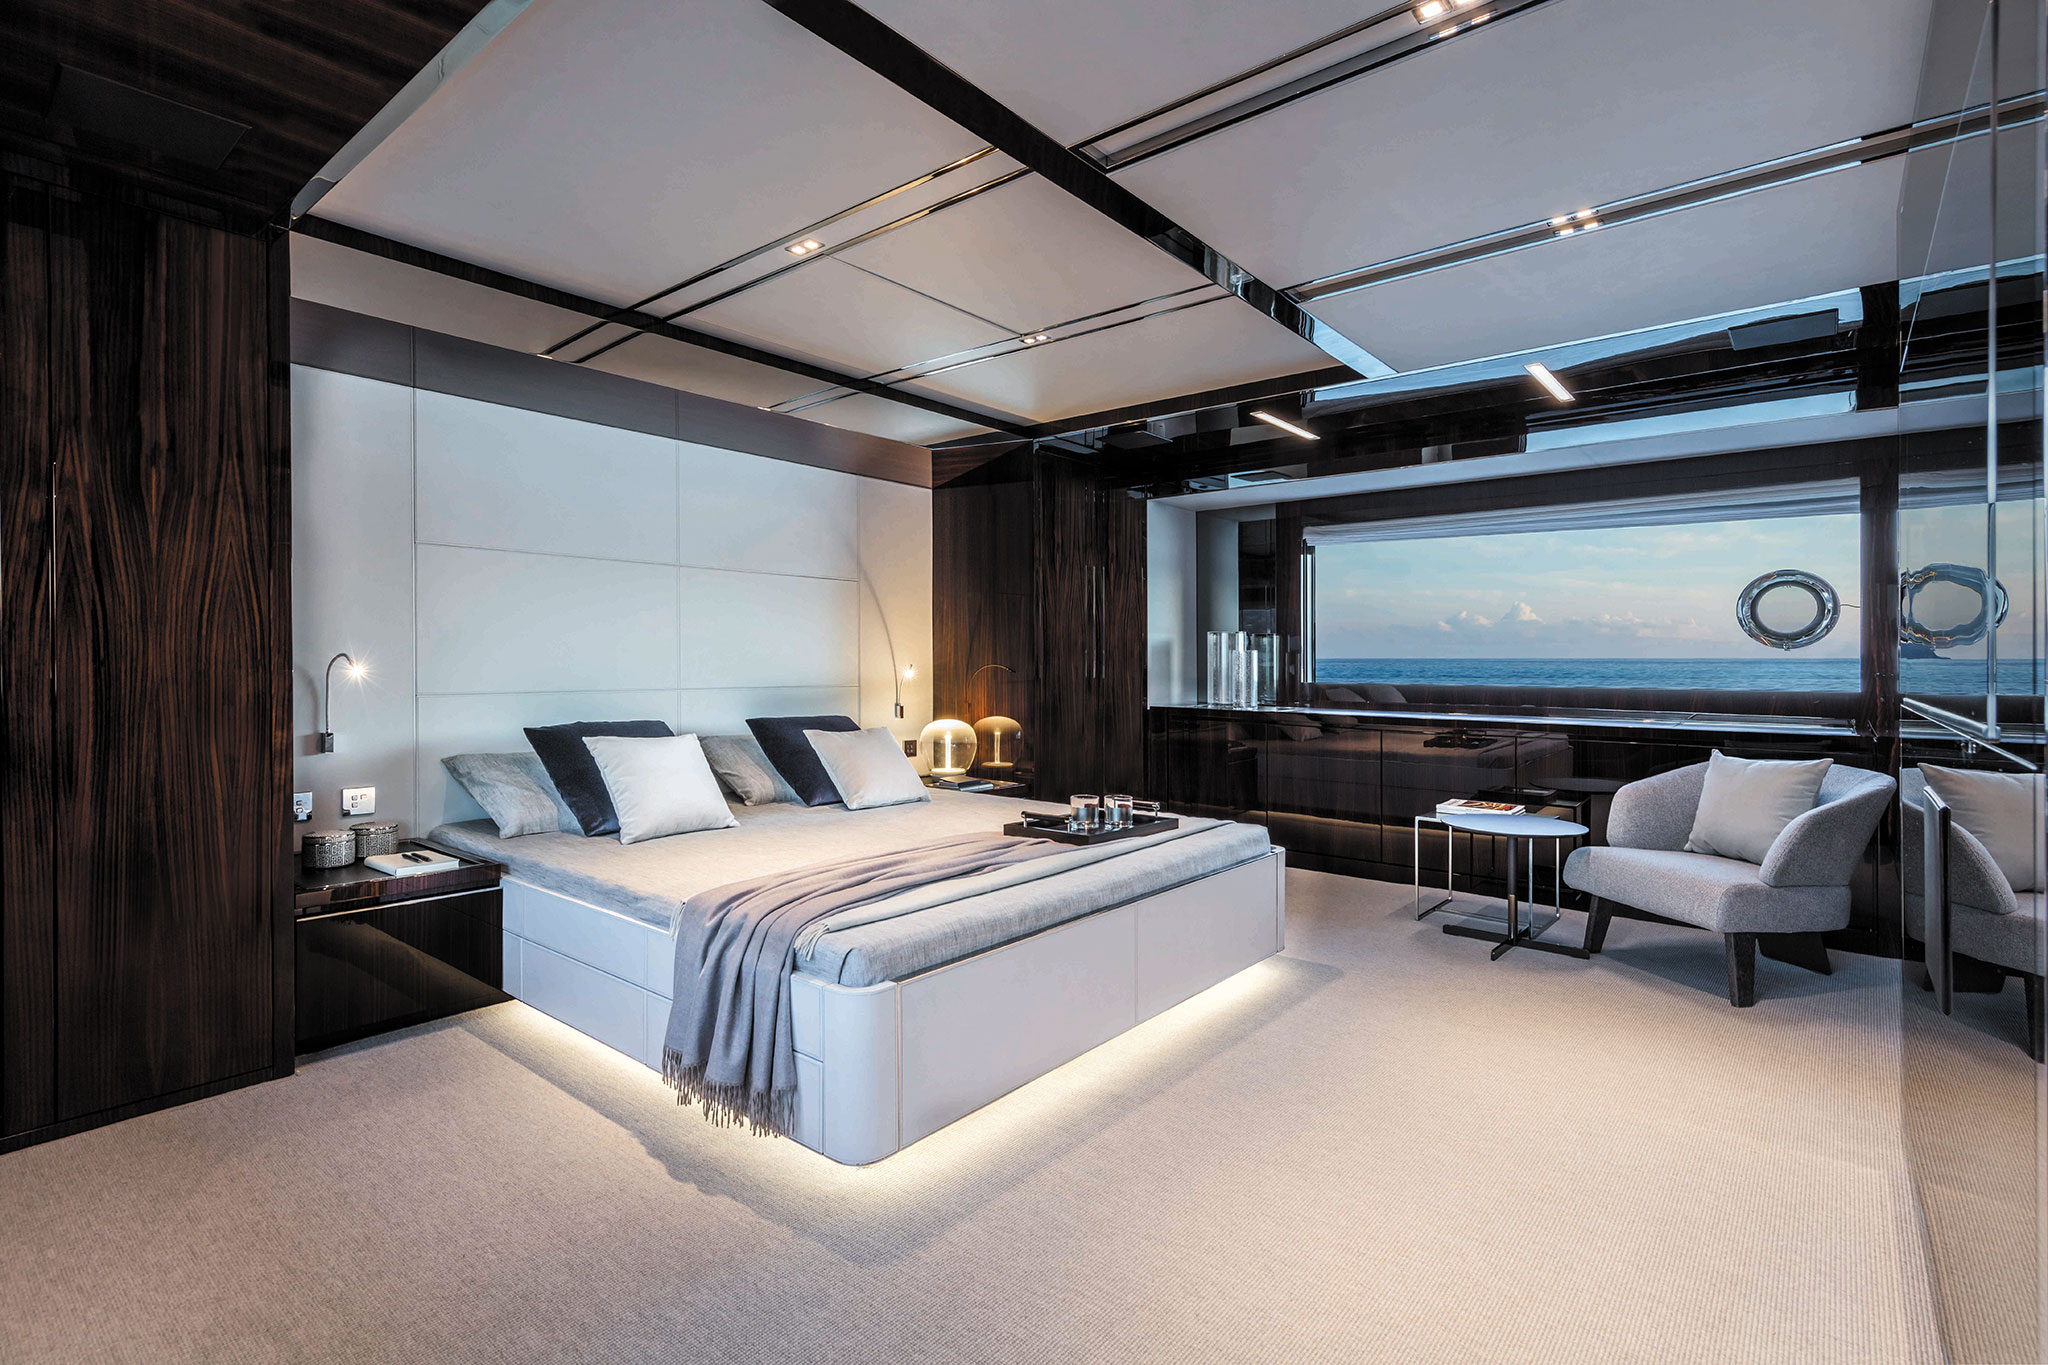 Riva-110-Dolcevita-Yachts-France-171-Interiors-21